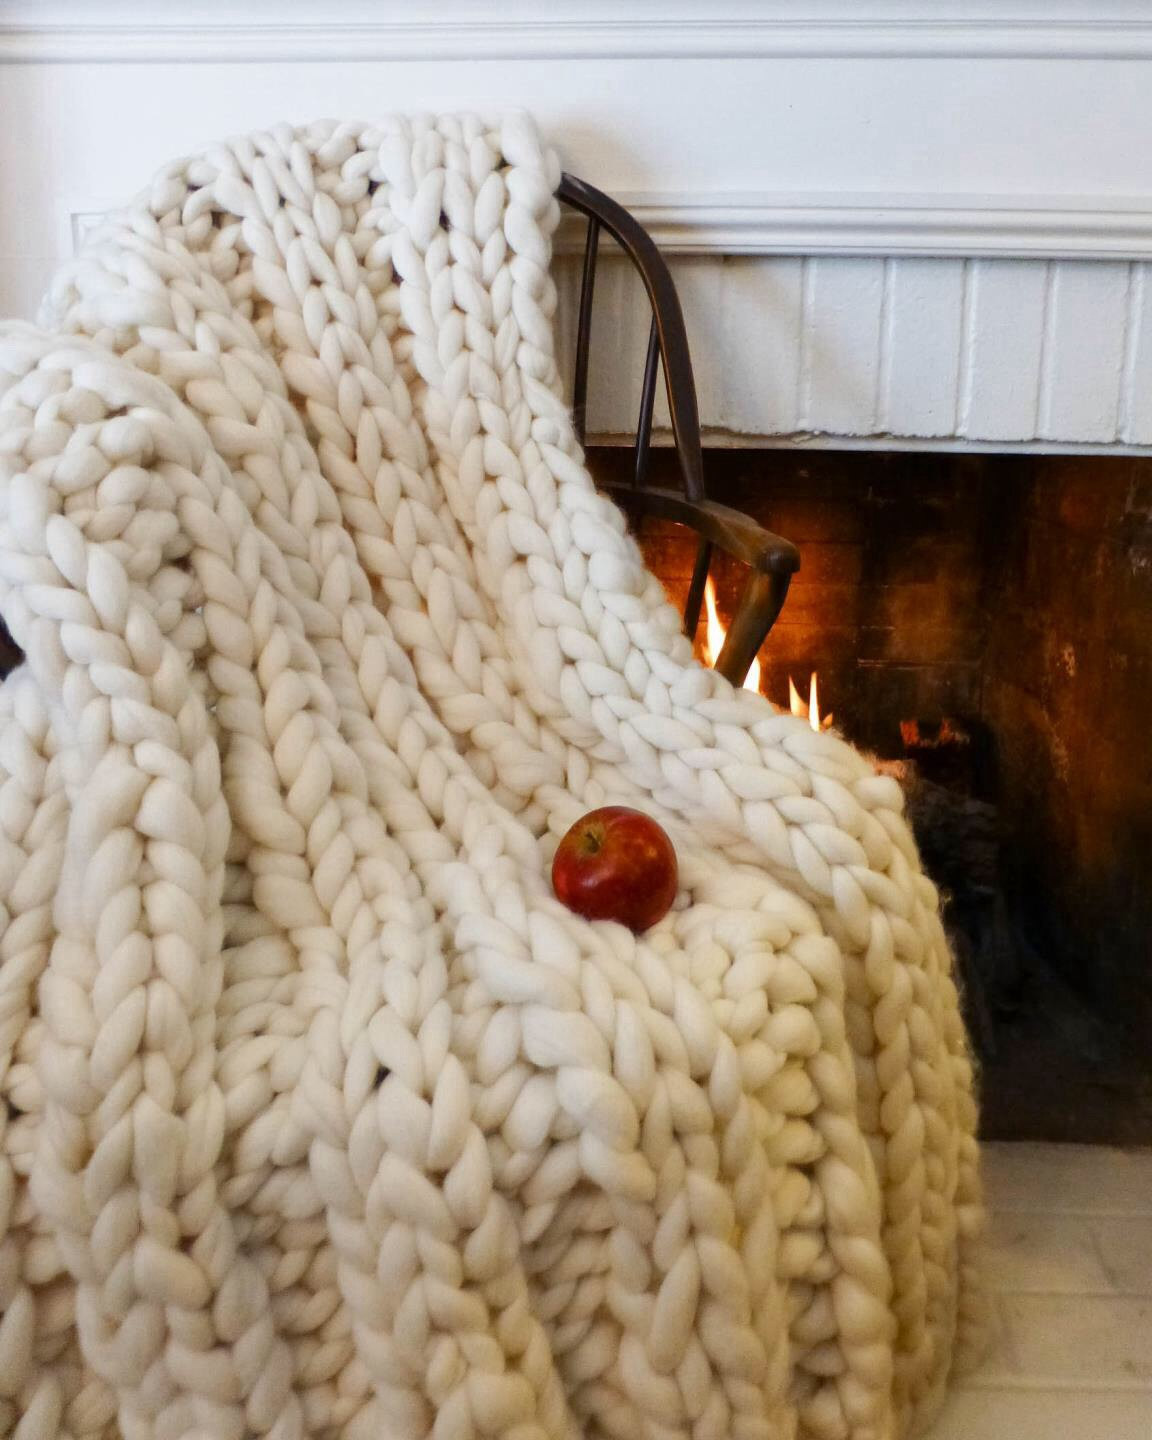 Chunky Knit Wool Best Of Super Chunky Blanket 30×60 Pure Merino Wool Chunky Throw Of Top 41 Pictures Chunky Knit Wool